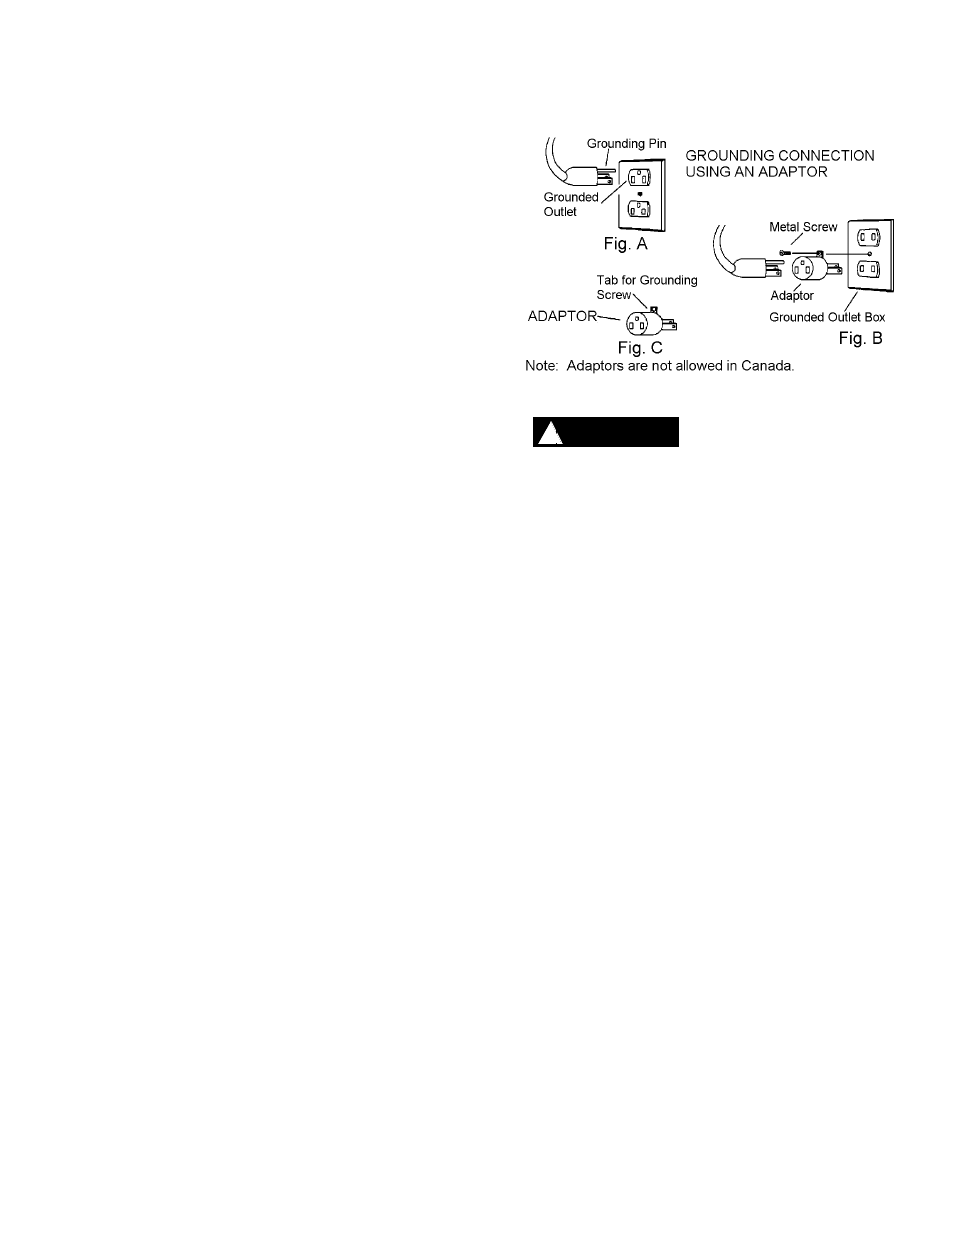 Grounding instructions warning prochem spot pro user manual grounding instructions warning prochem spot pro user manual page 7 24 keyboard keysfo Image collections